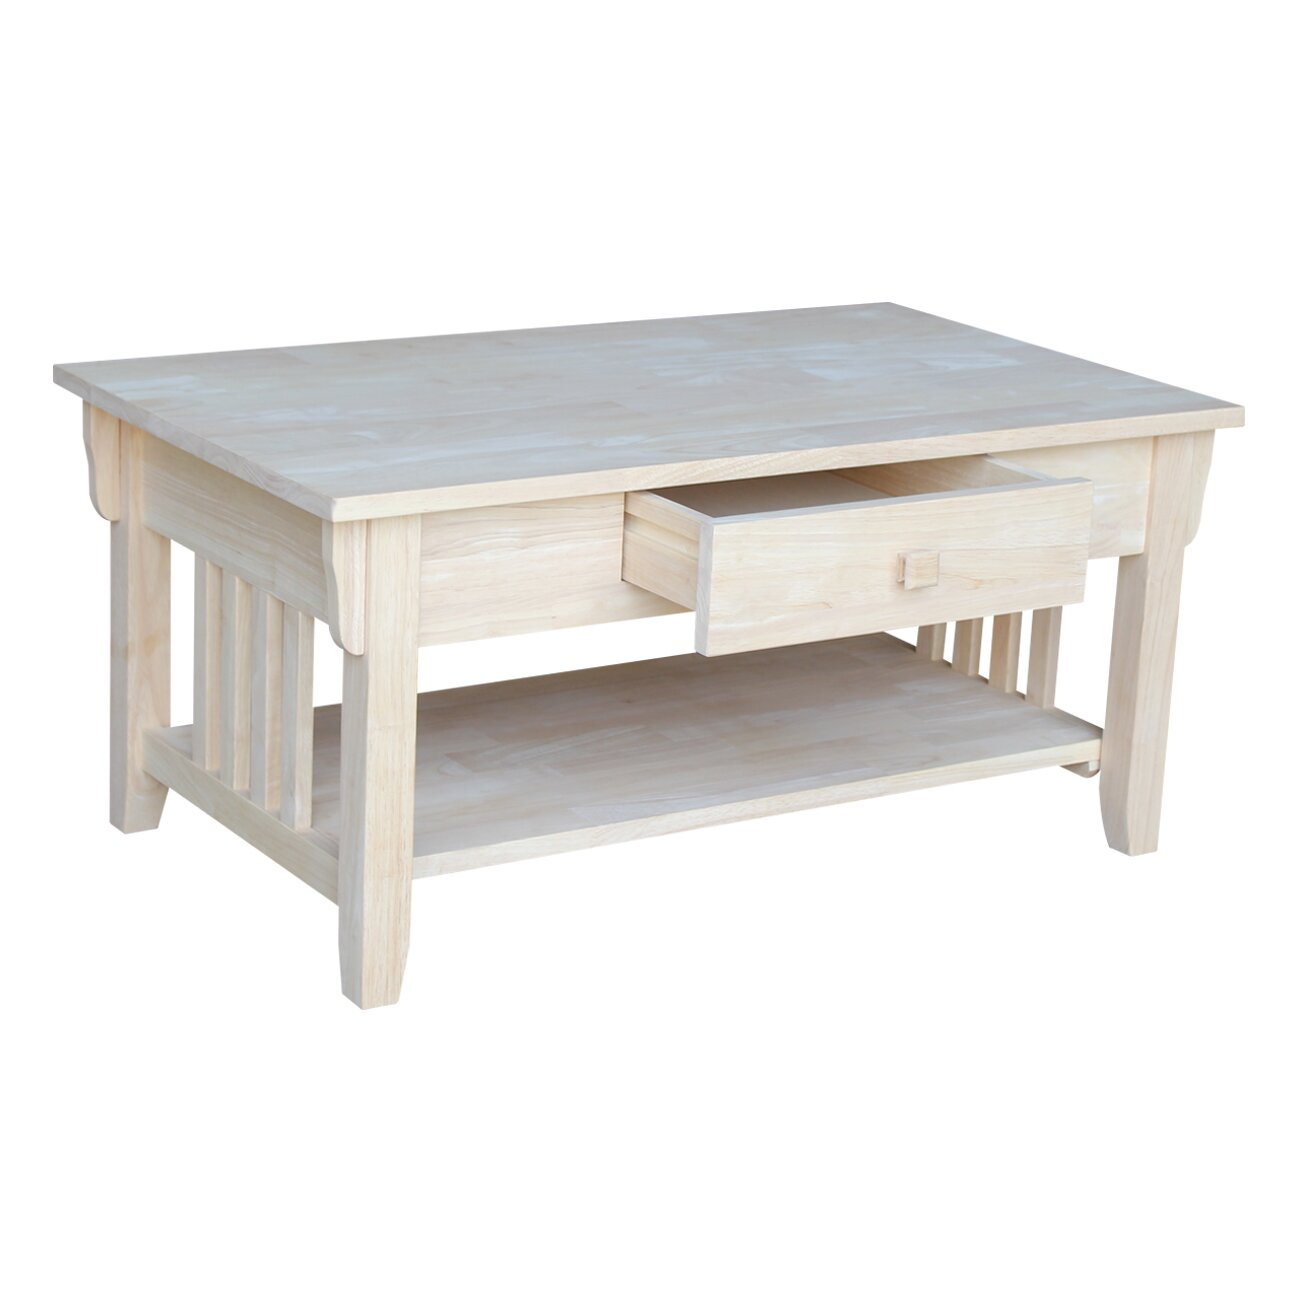 International concepts unfinished wood coffee table for Unfinished coffee table